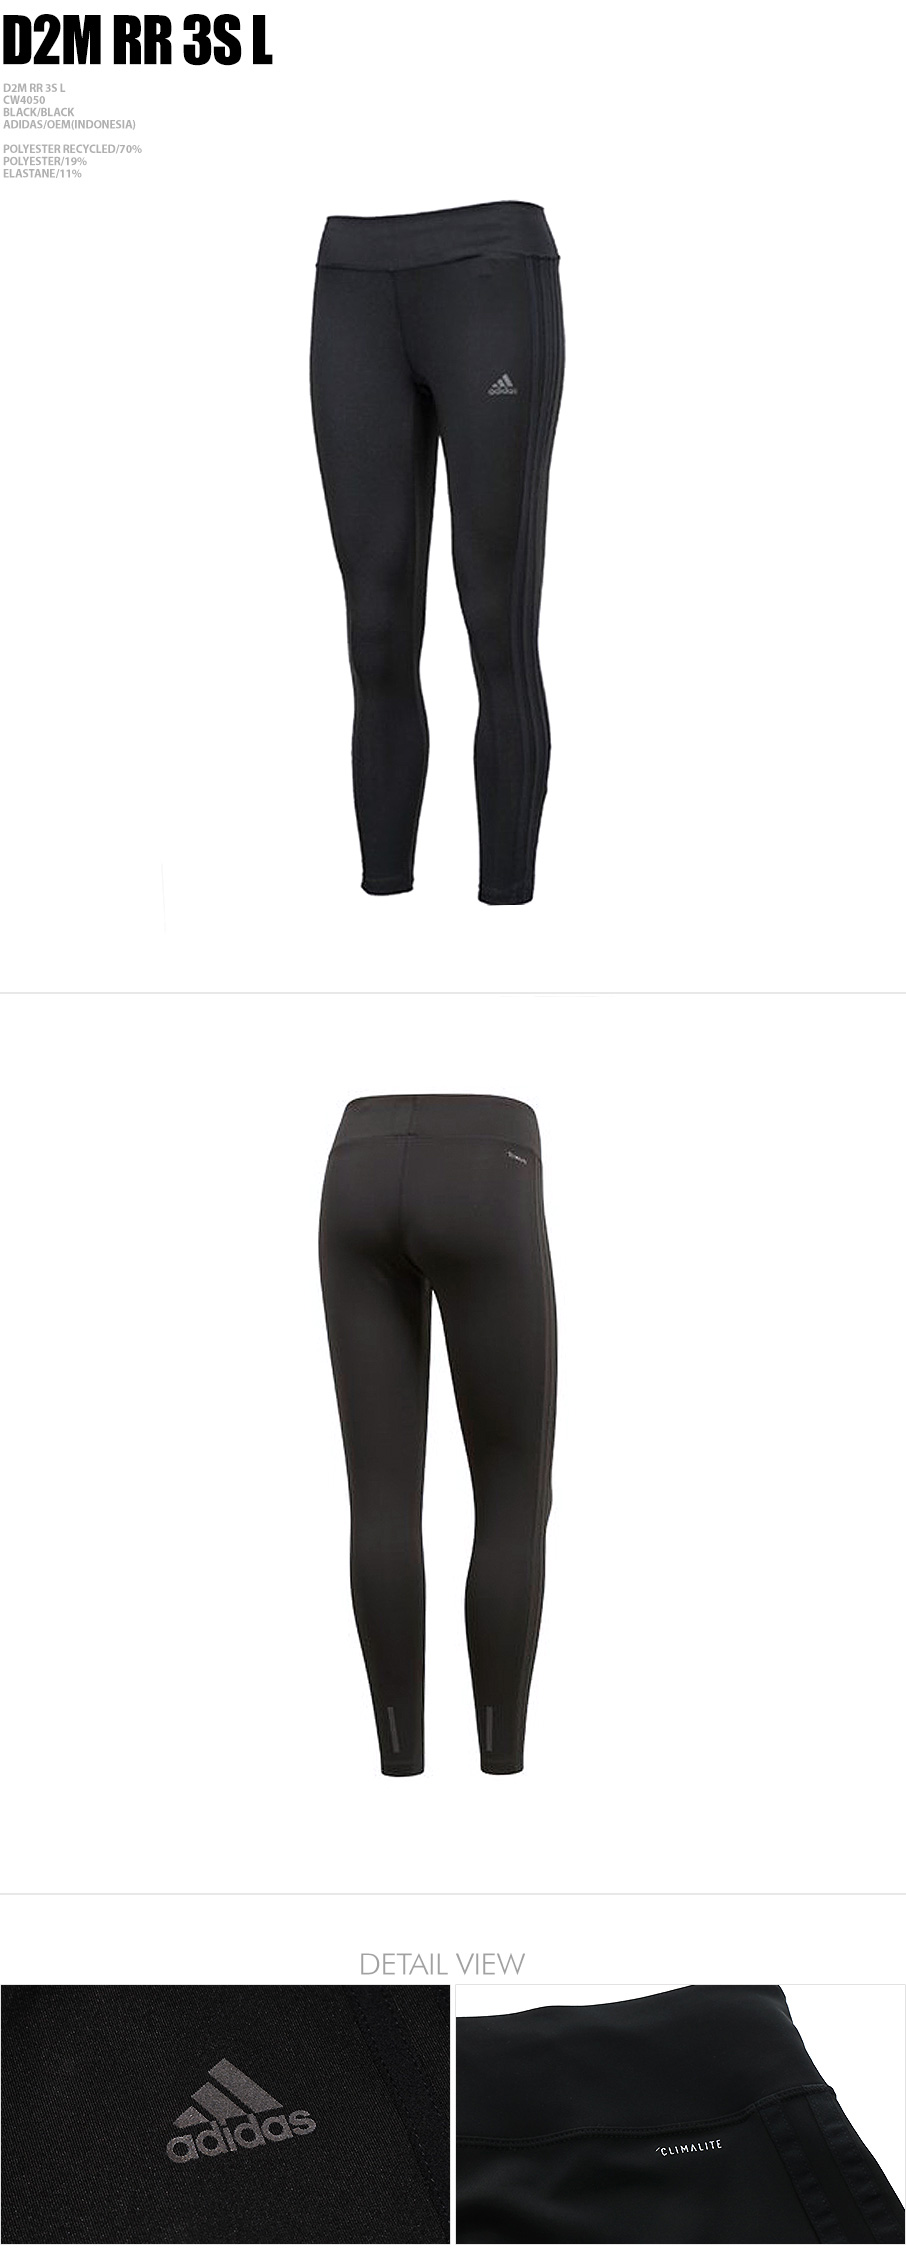 아디다스 우먼스 D2M 3S 레깅스 블랙(ADIDAS WOMENS D2M 3S LEGGINGS BLACK)